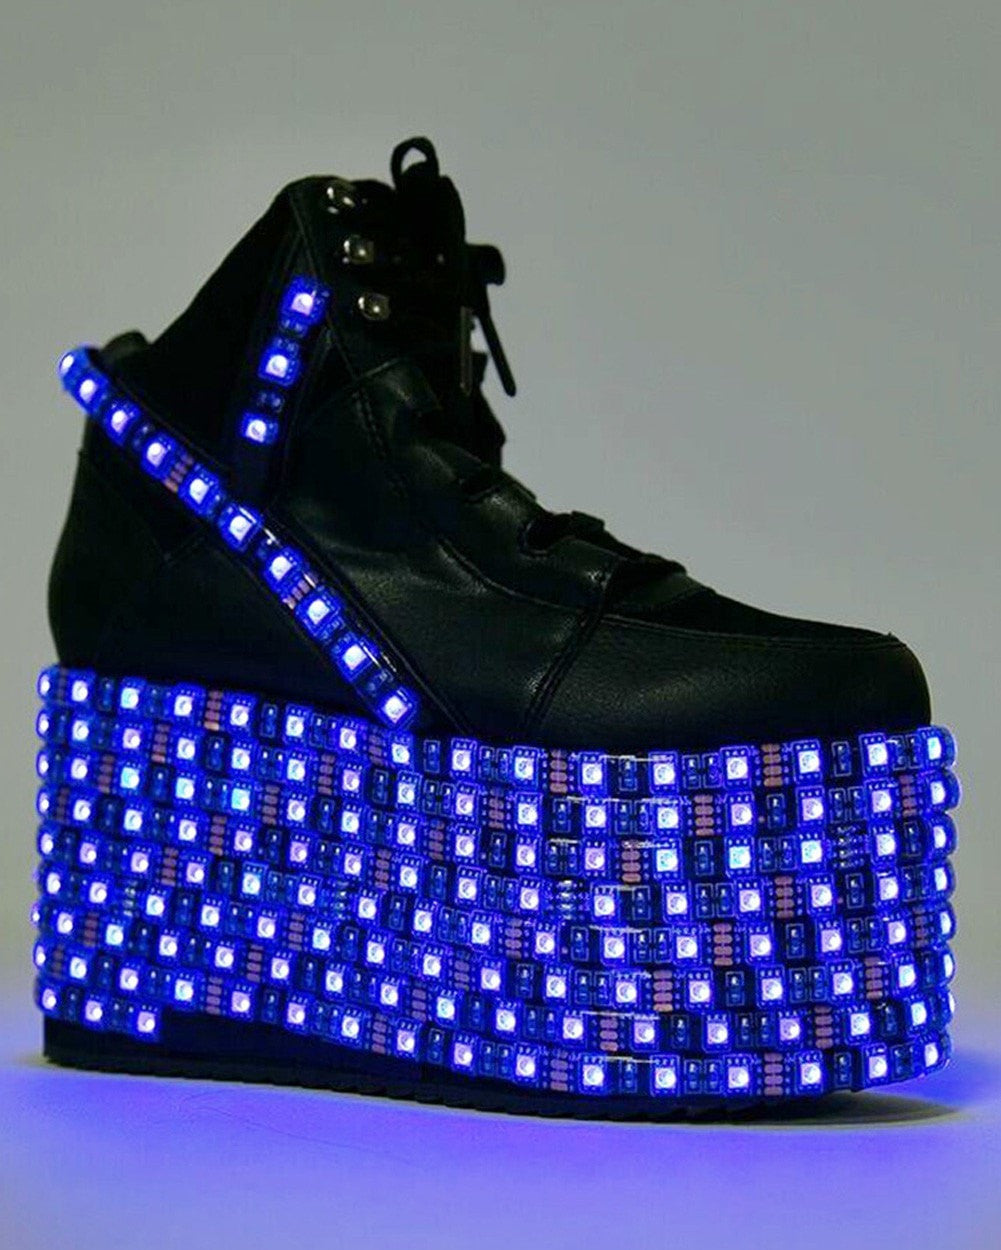 8cfd23d3e57137 ... YRU Hi LED Platform Shoes-blue LEDs ...